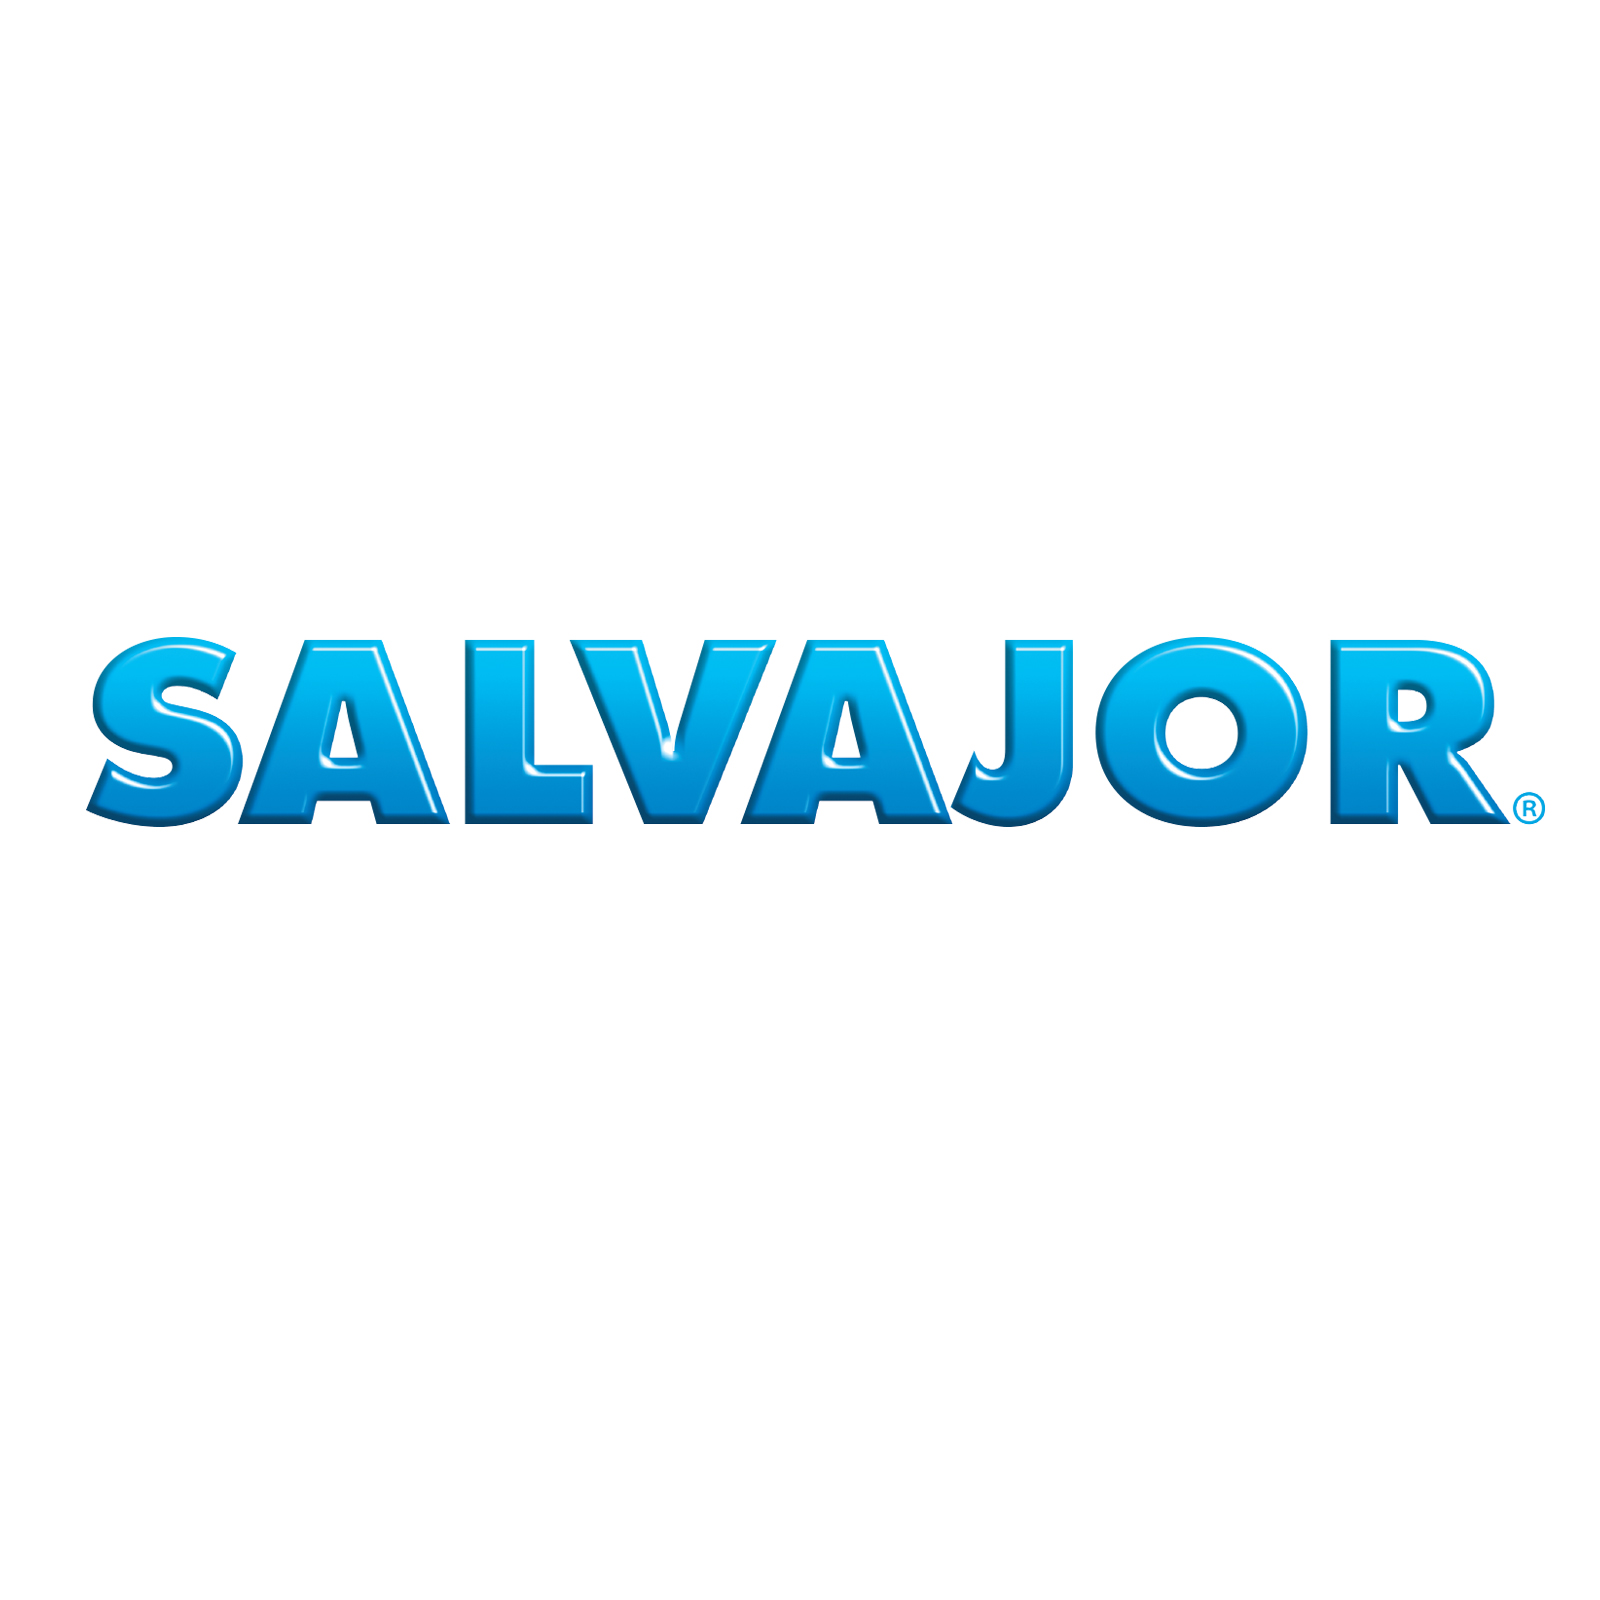 salvajor.jpg